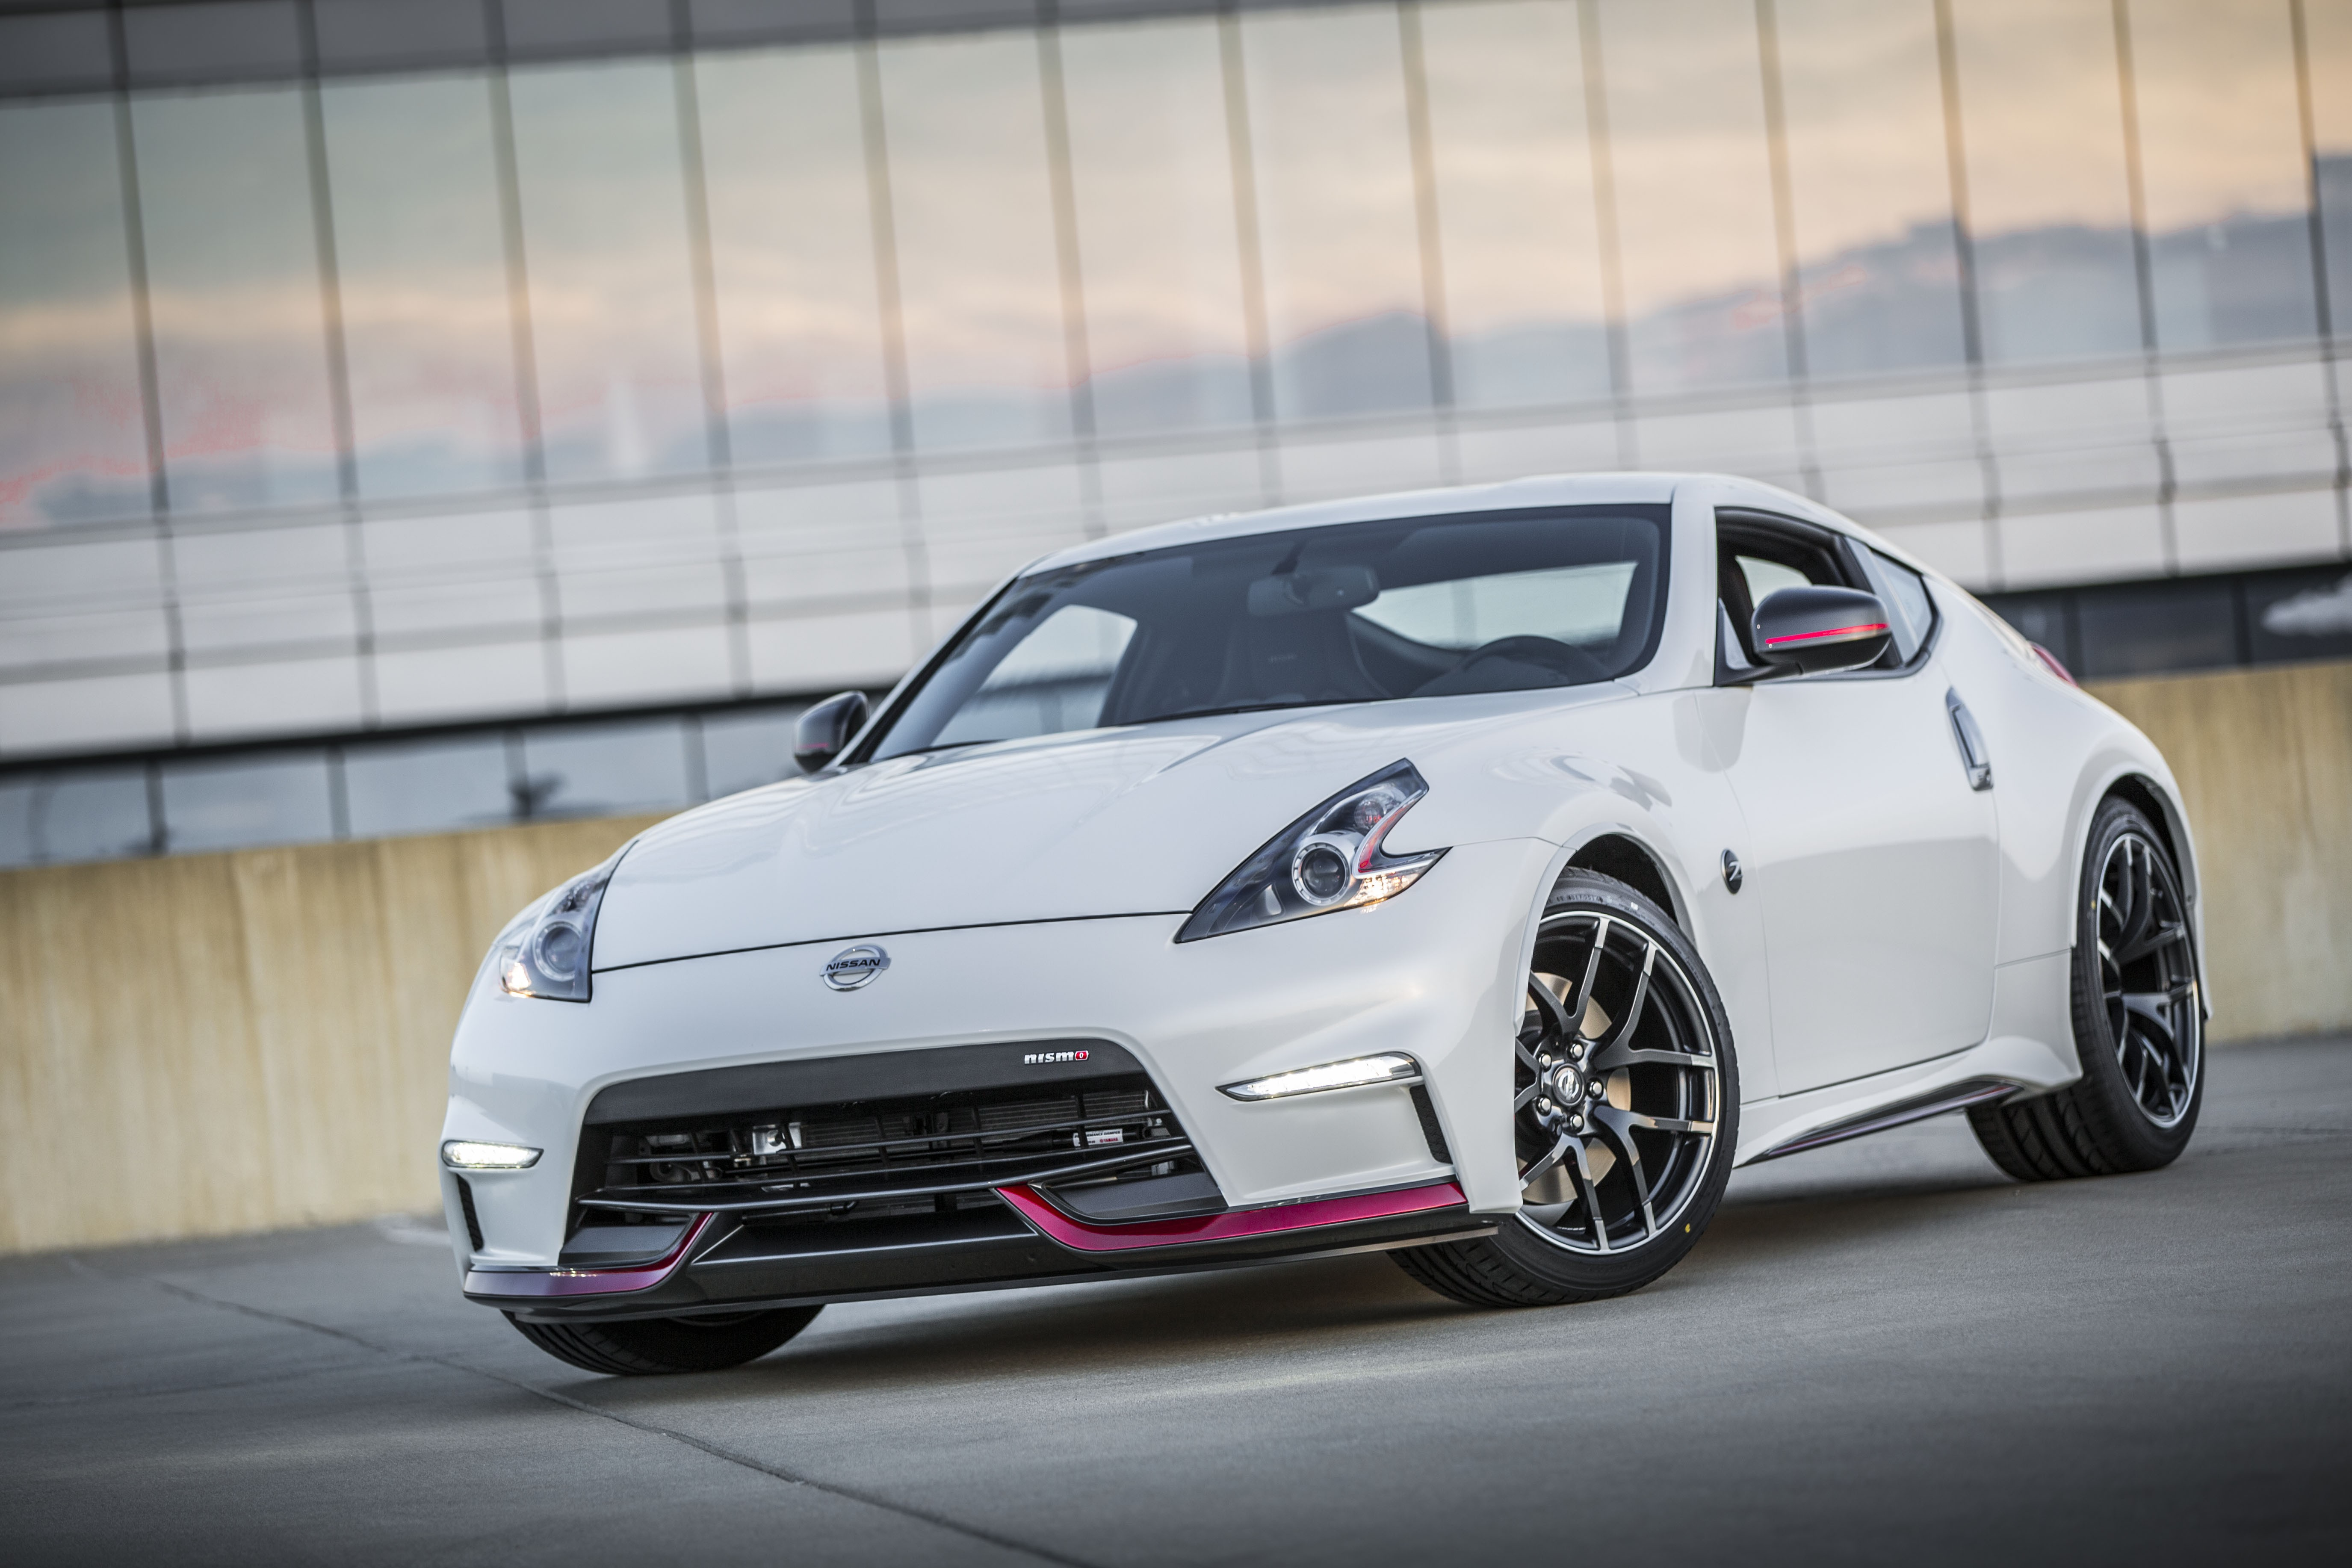 2016 nissan 370z coupe models will have fake engine sounds pumped into the cabin autoevolution. Black Bedroom Furniture Sets. Home Design Ideas